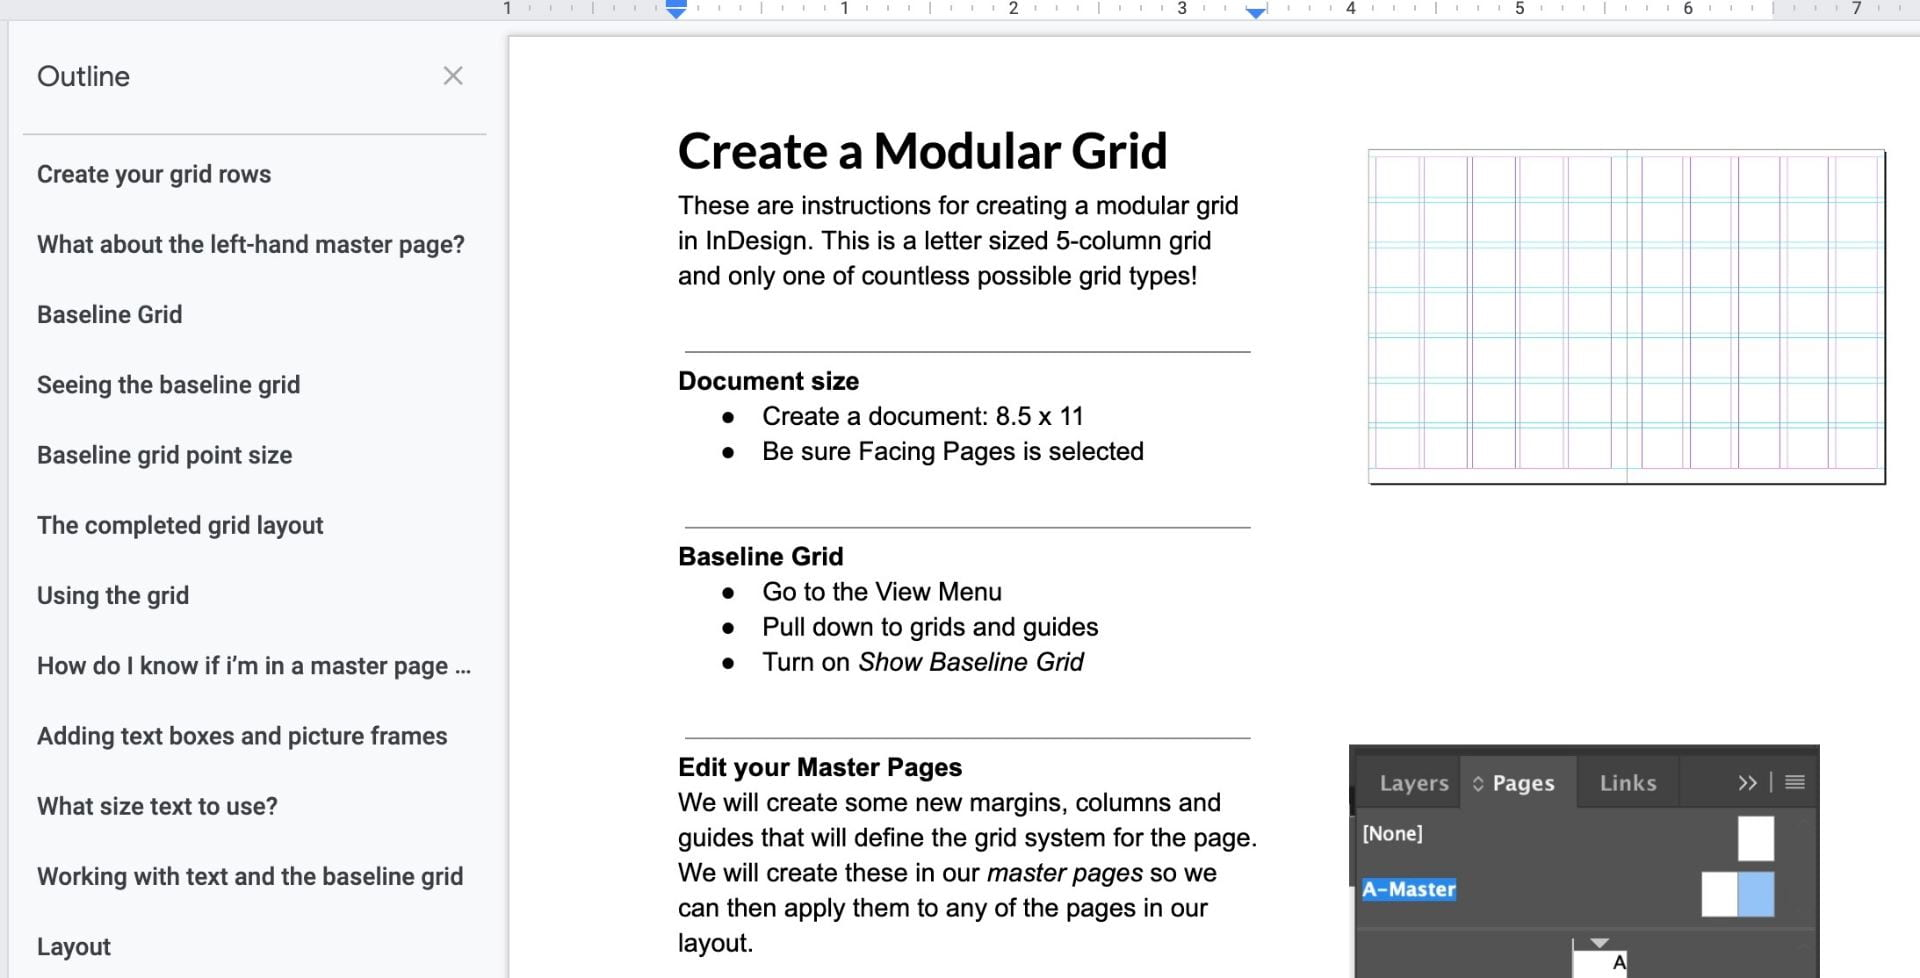 Create a modular grid in InDesign